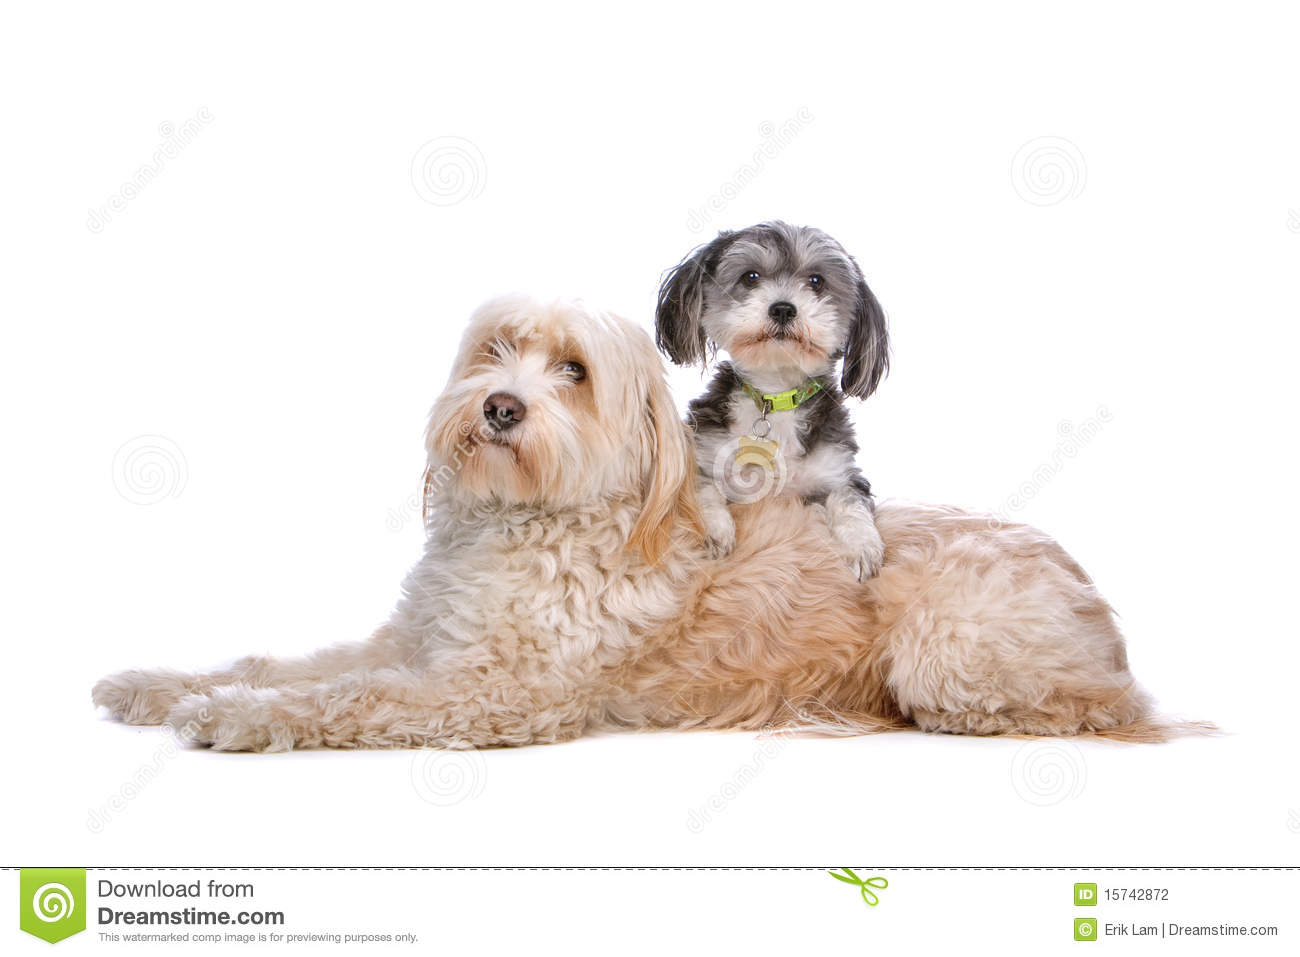 Mixed breed dog up on a Tibetan terrier